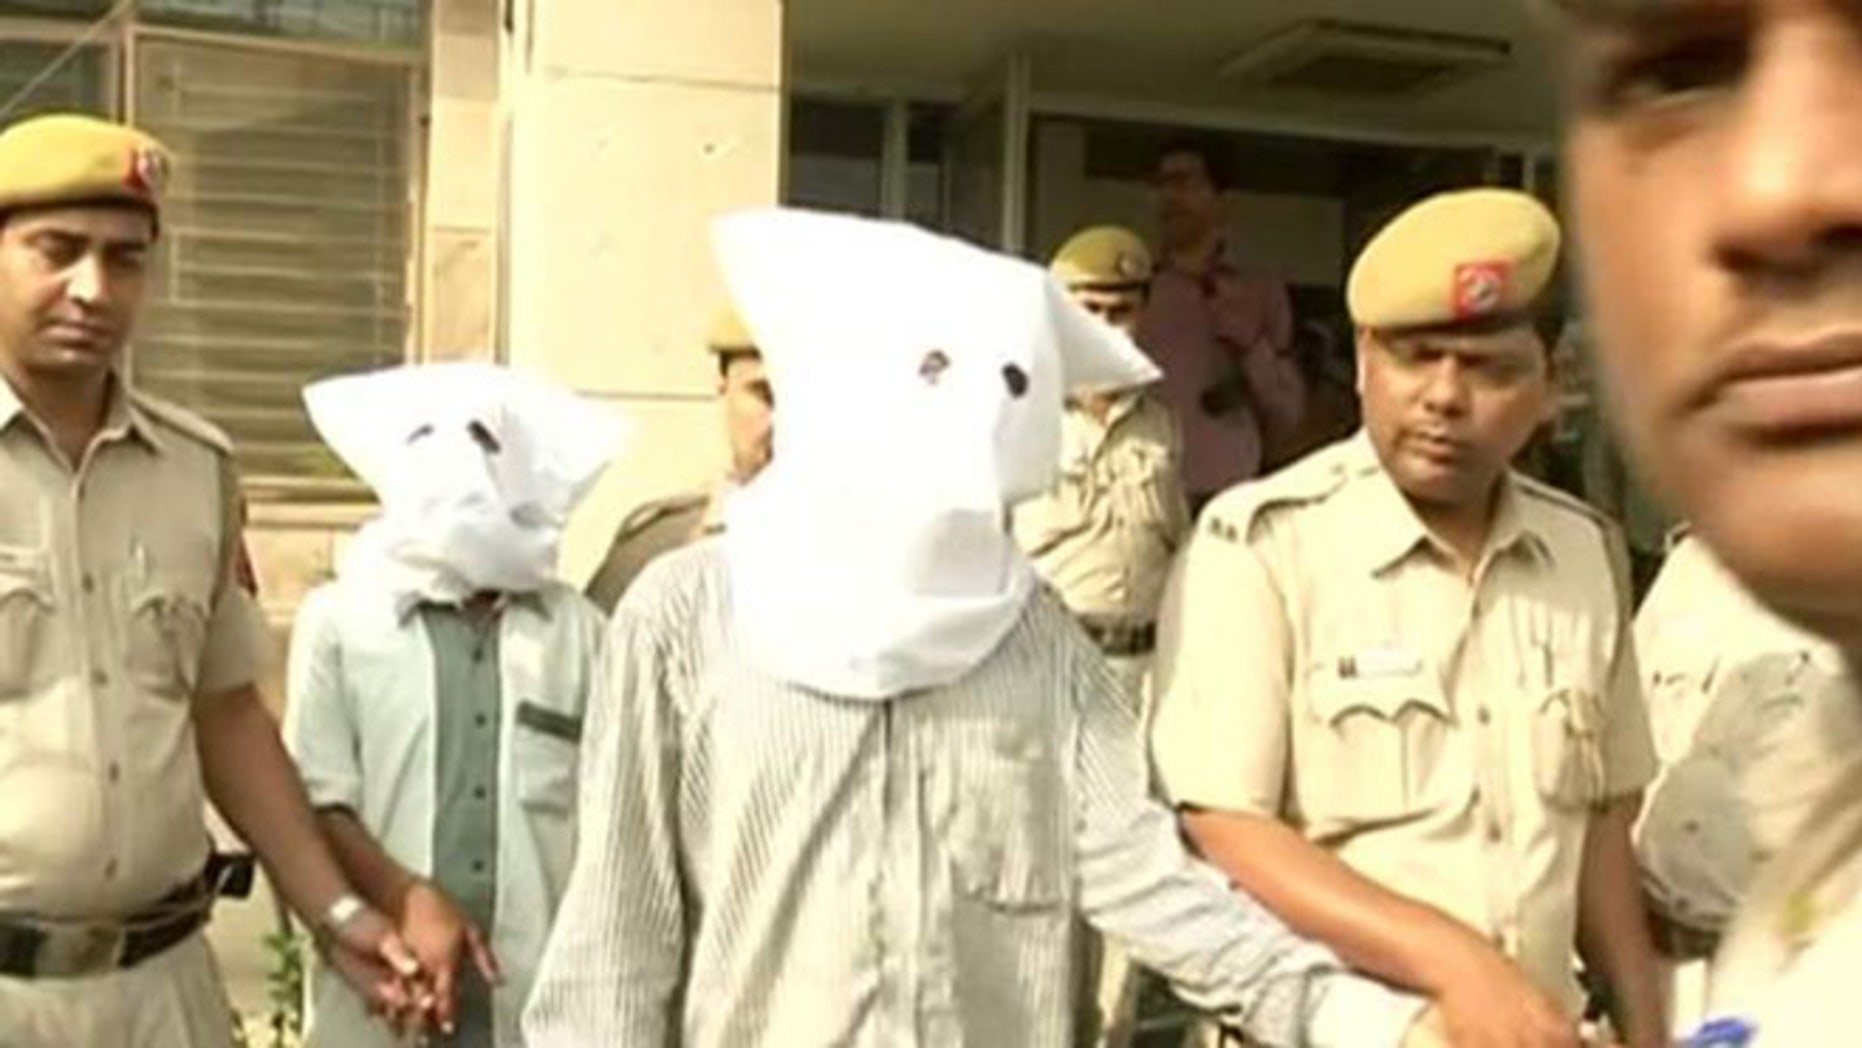 Suspects in child rapes arrested in India.